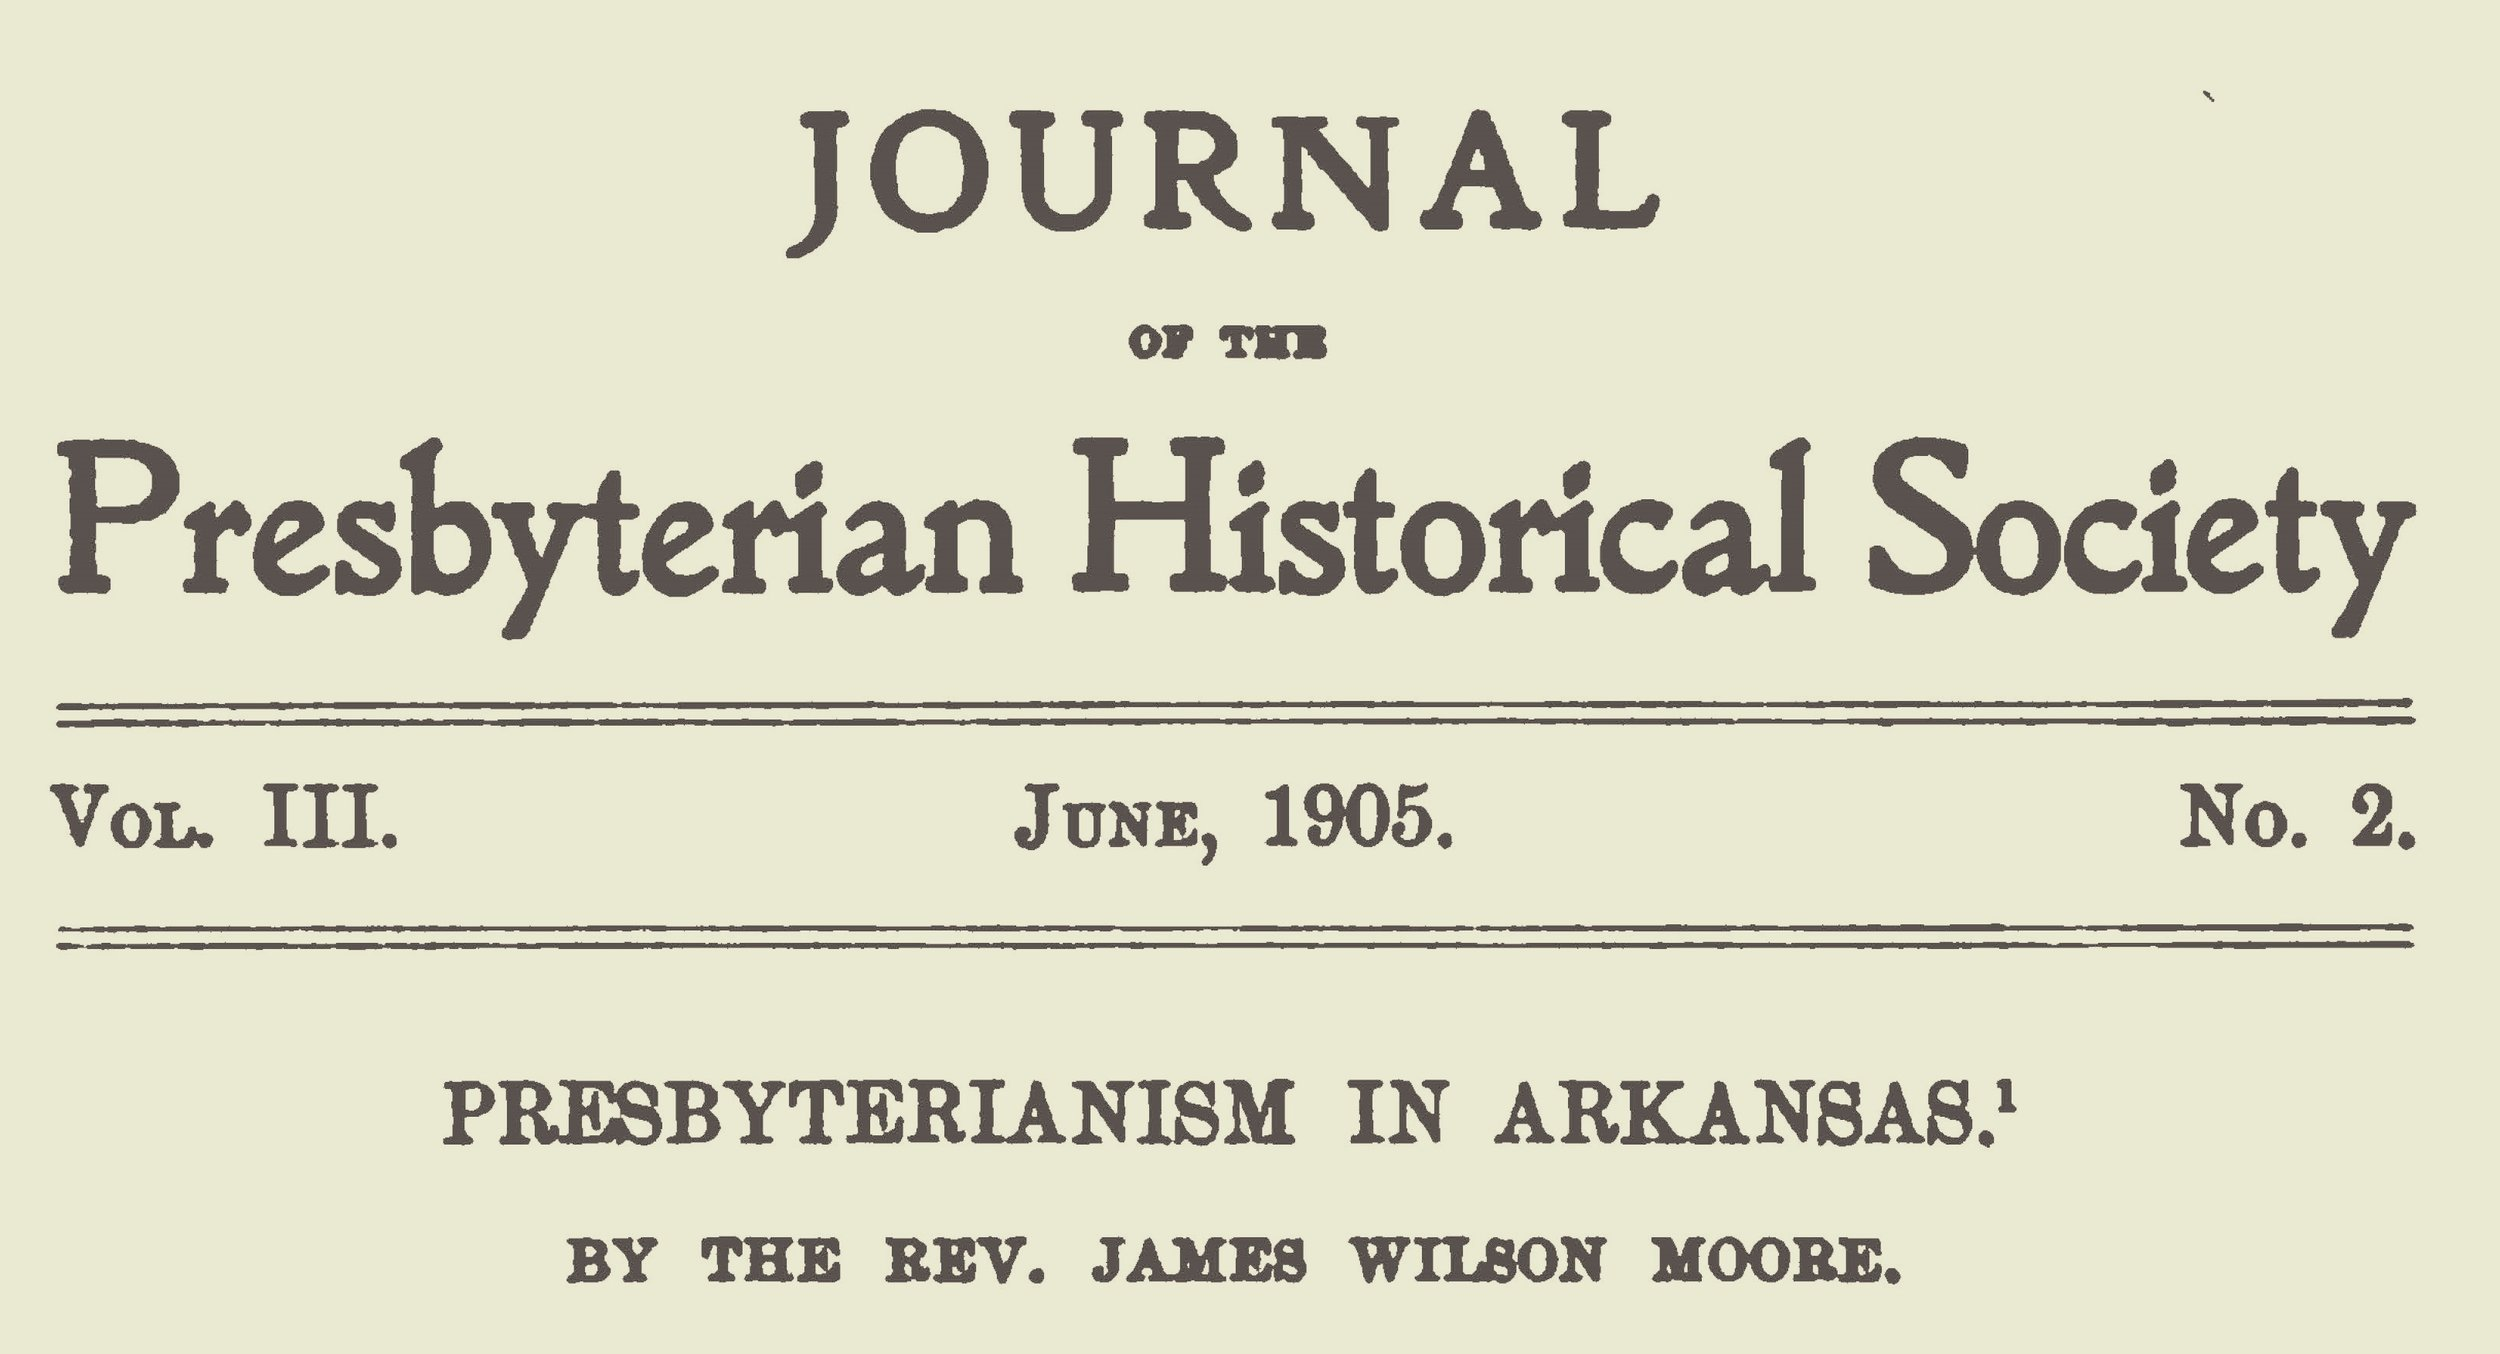 Moore, James Wilson, Presbyterianism in Arkansas Title Page.jpg